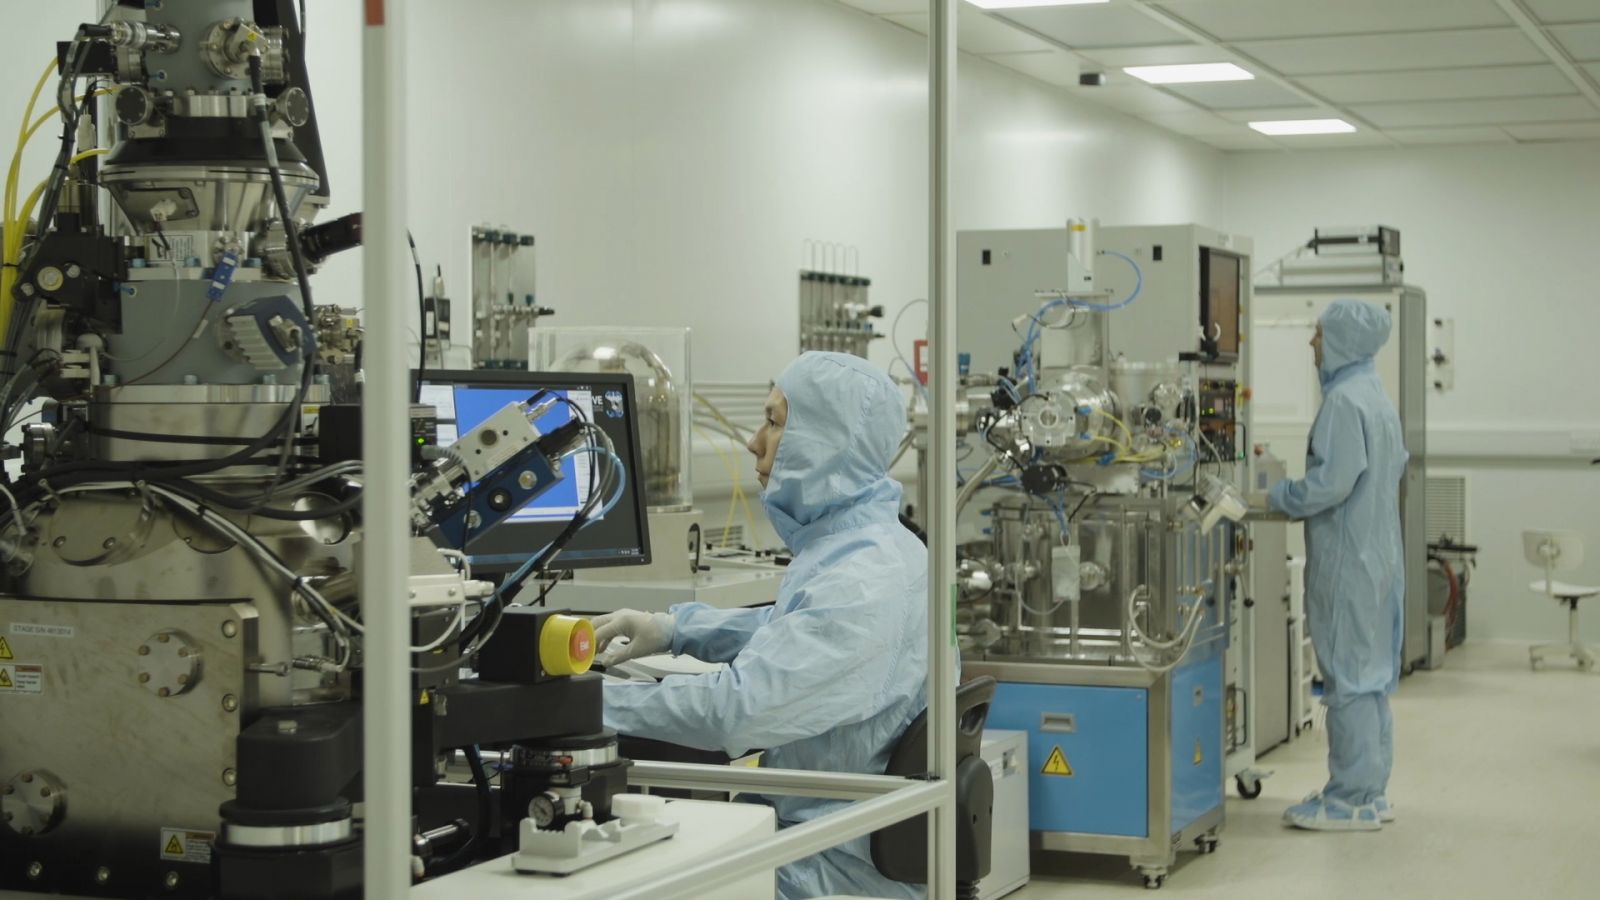 Relocation and installation of high value research equipment